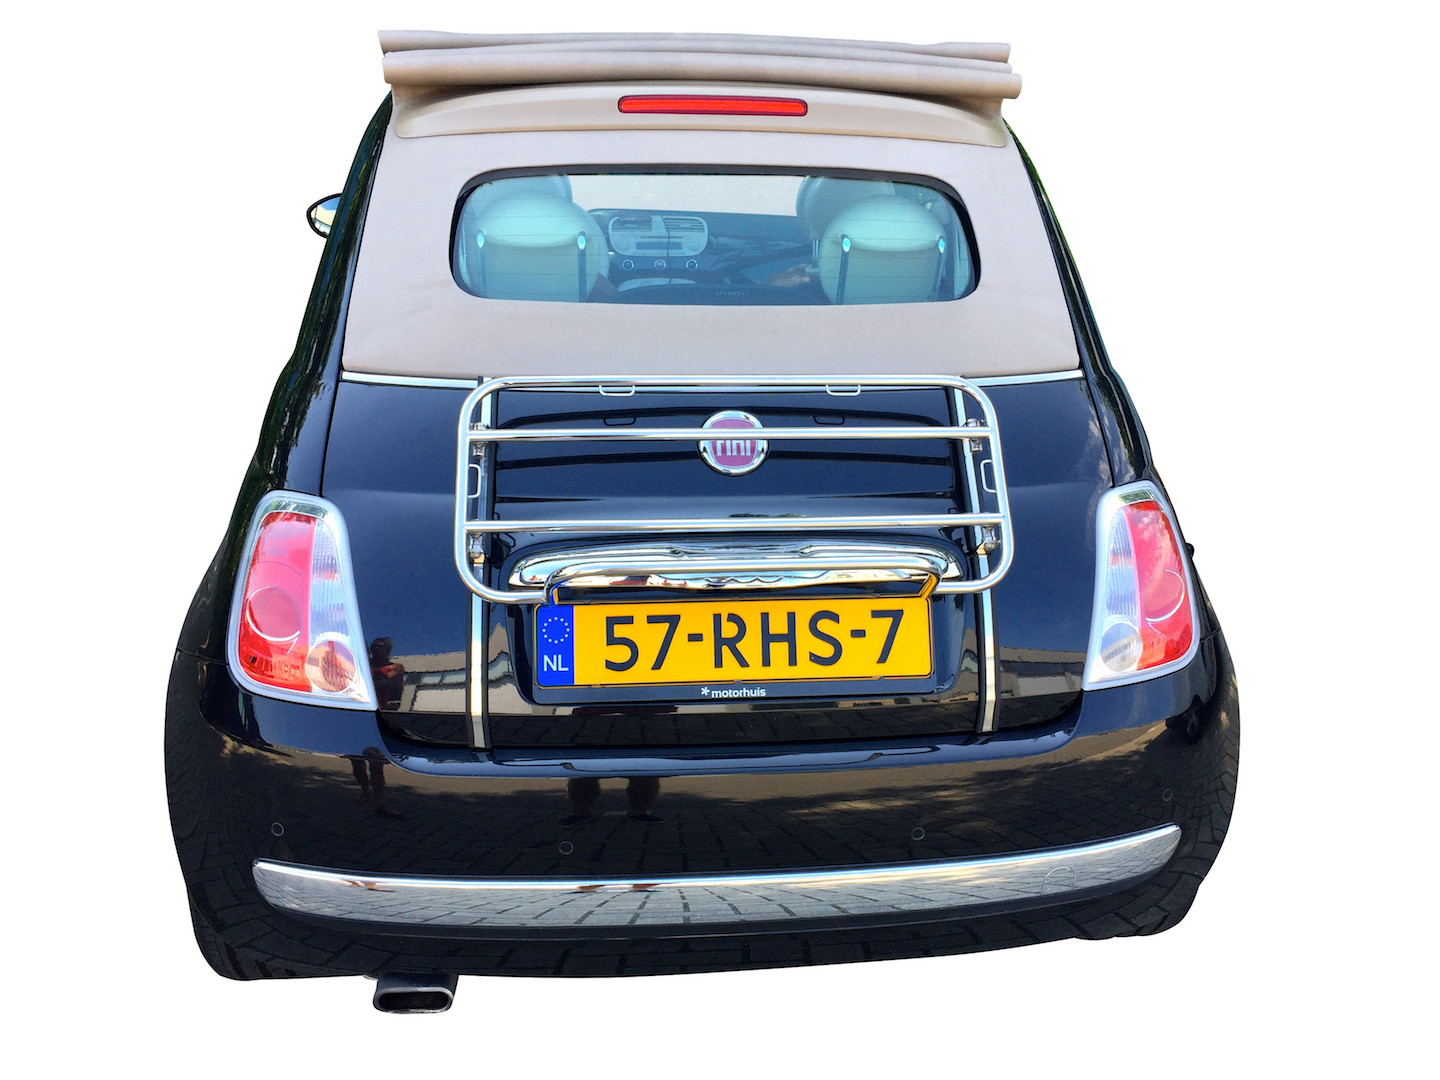 fiat 500c luggage rack boot carrier 2009 2017 new cabriolet atlas ebay. Black Bedroom Furniture Sets. Home Design Ideas